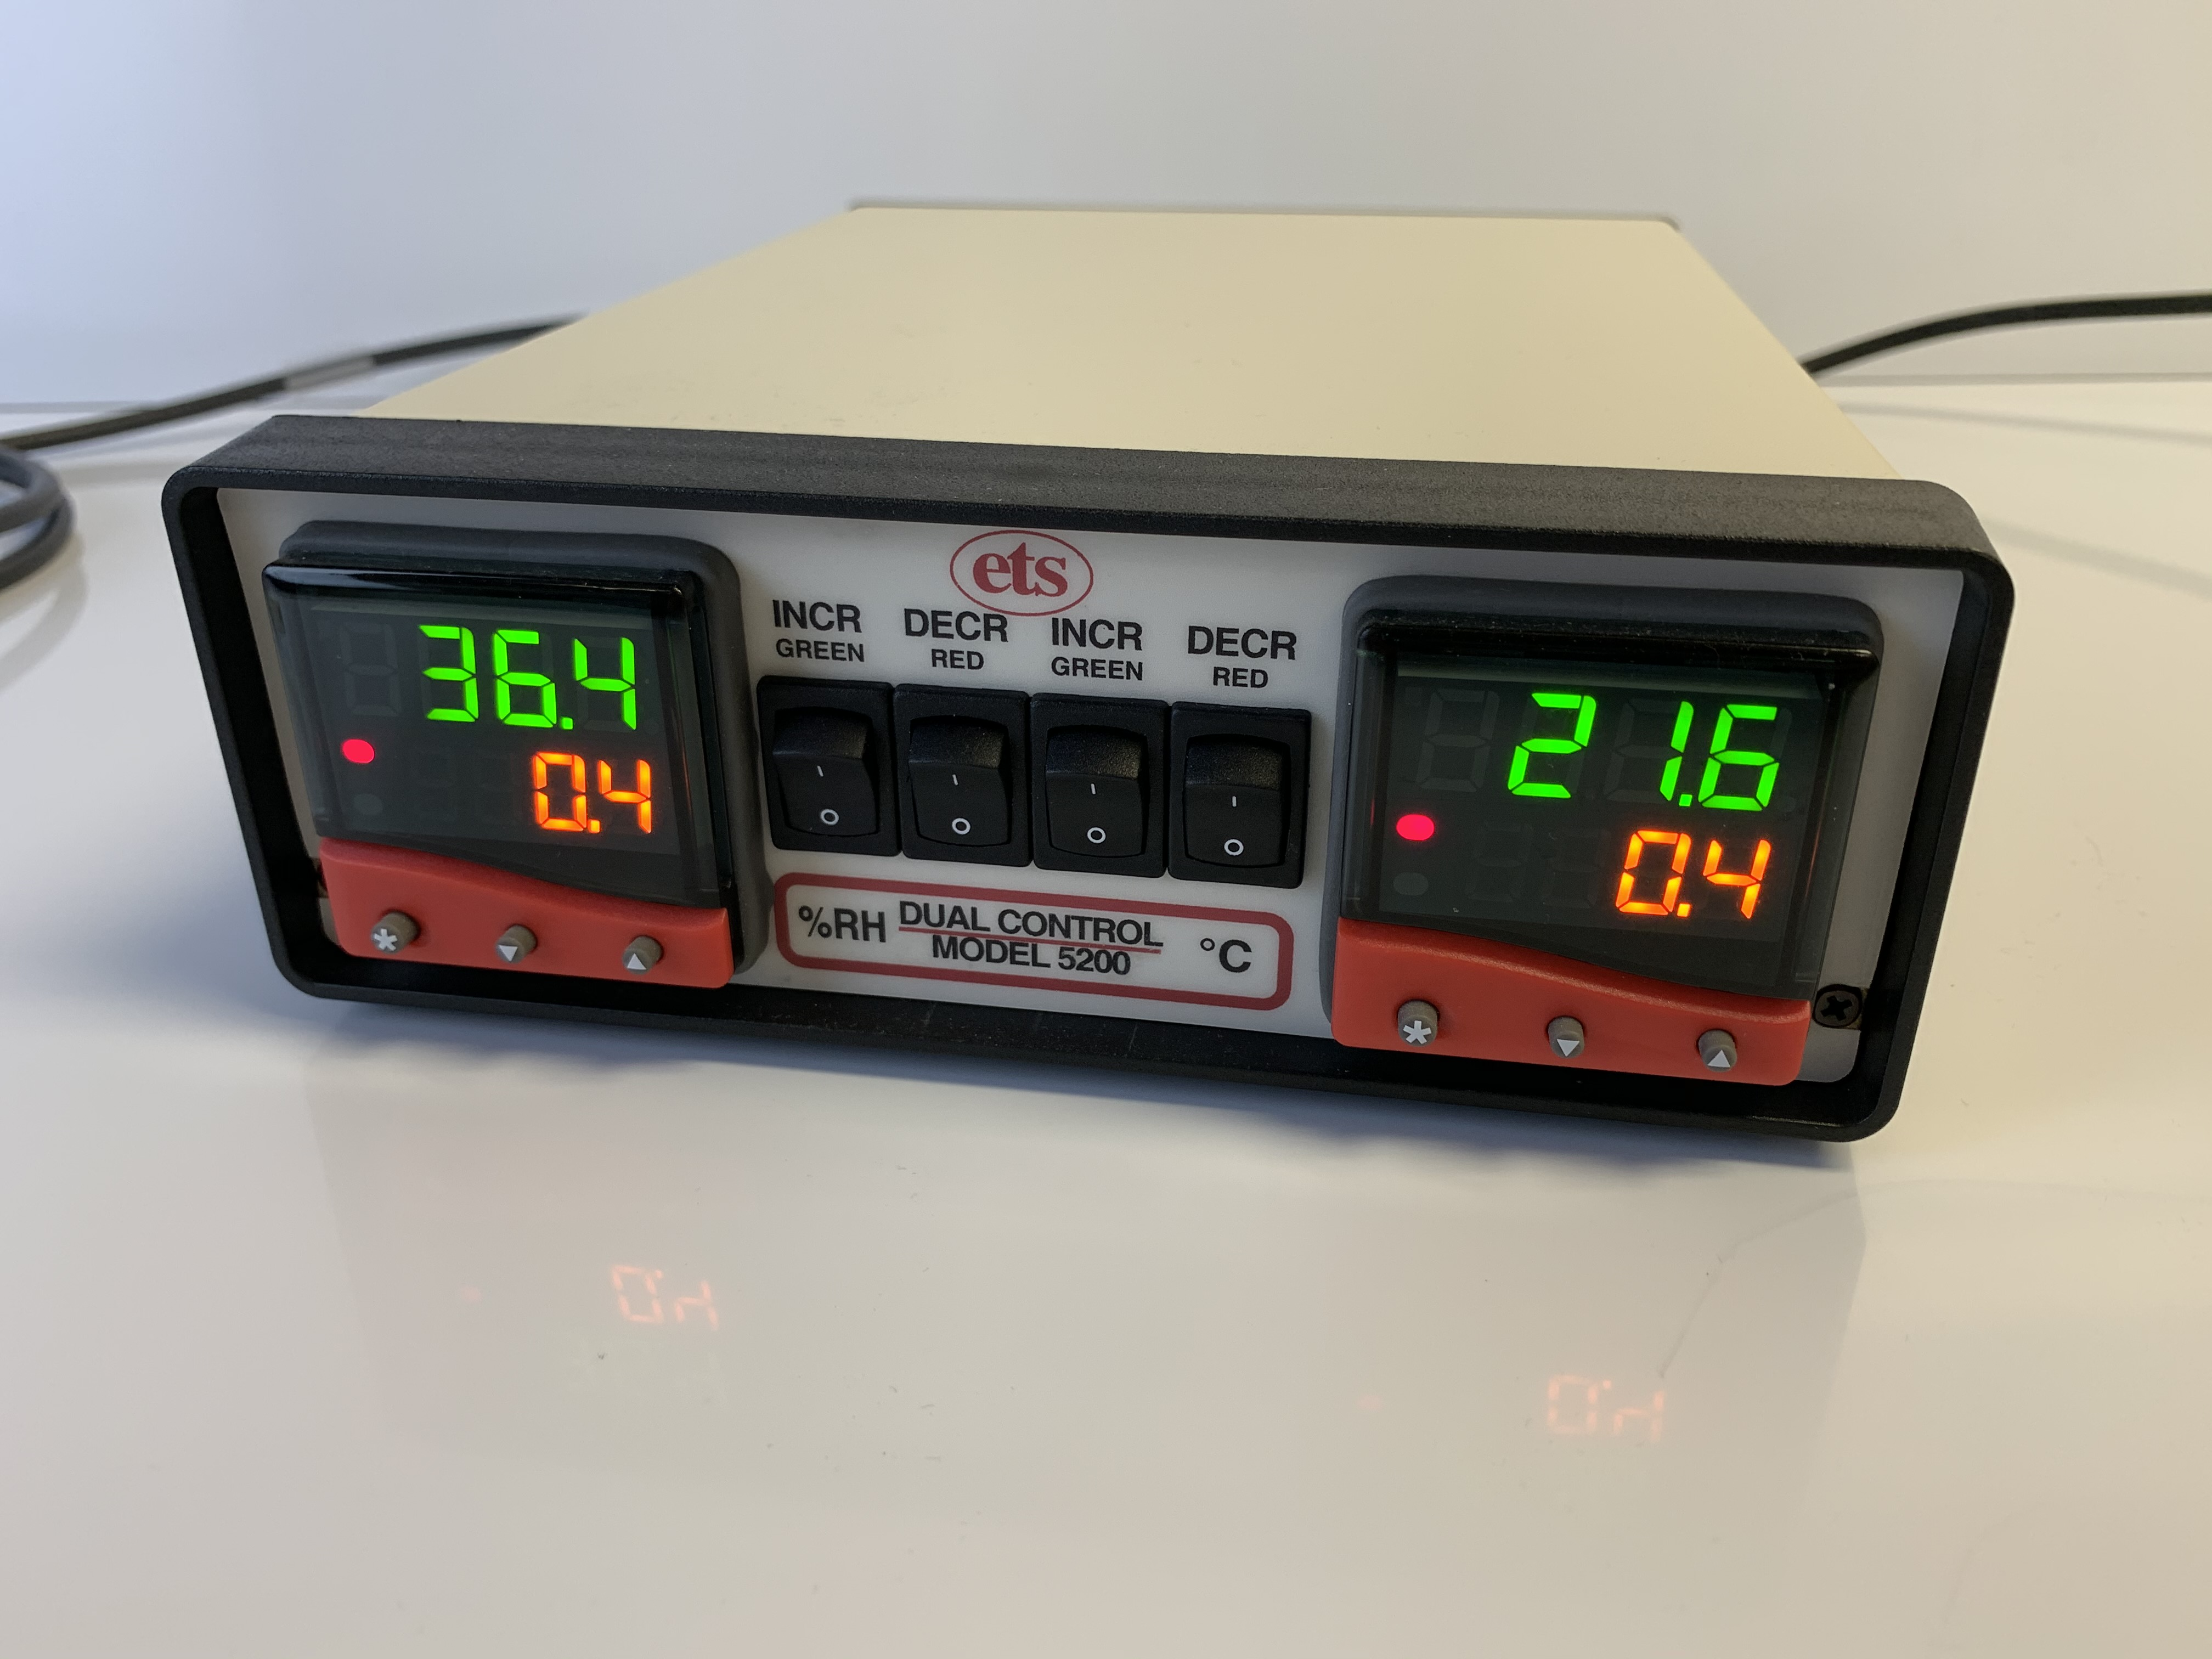 Series 5000 Humidity/Temperature Controllers